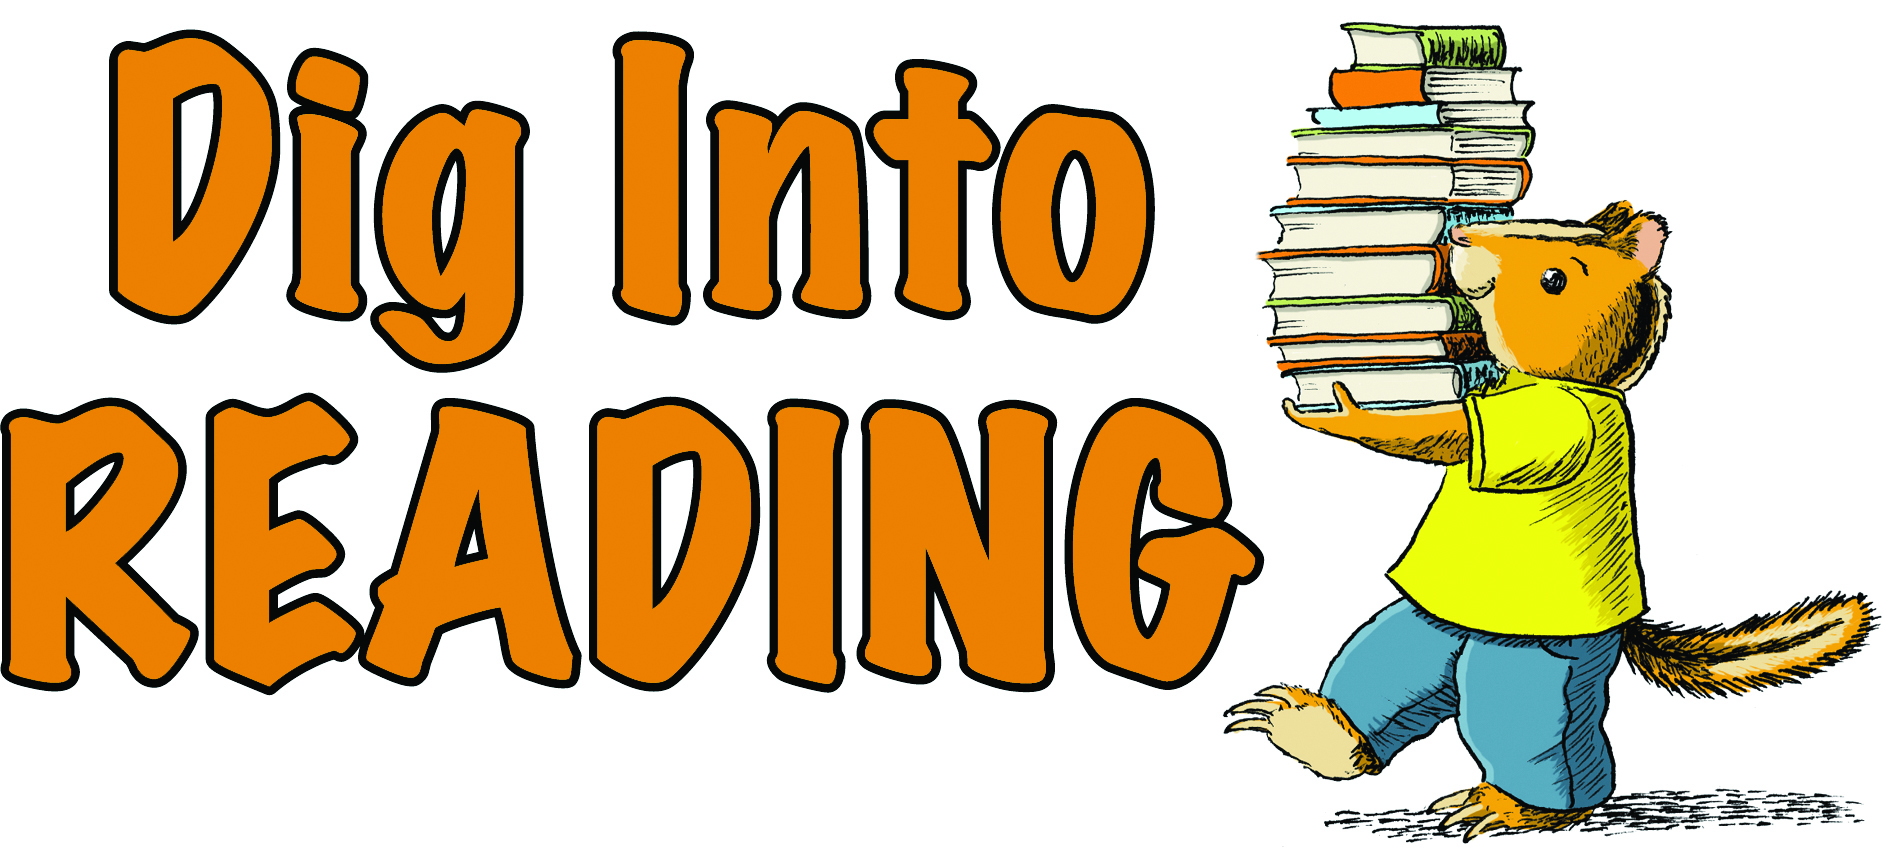 Worksheet Reading Program city and county of broomfield official website summer reading 2013 dig into slogan jpg program